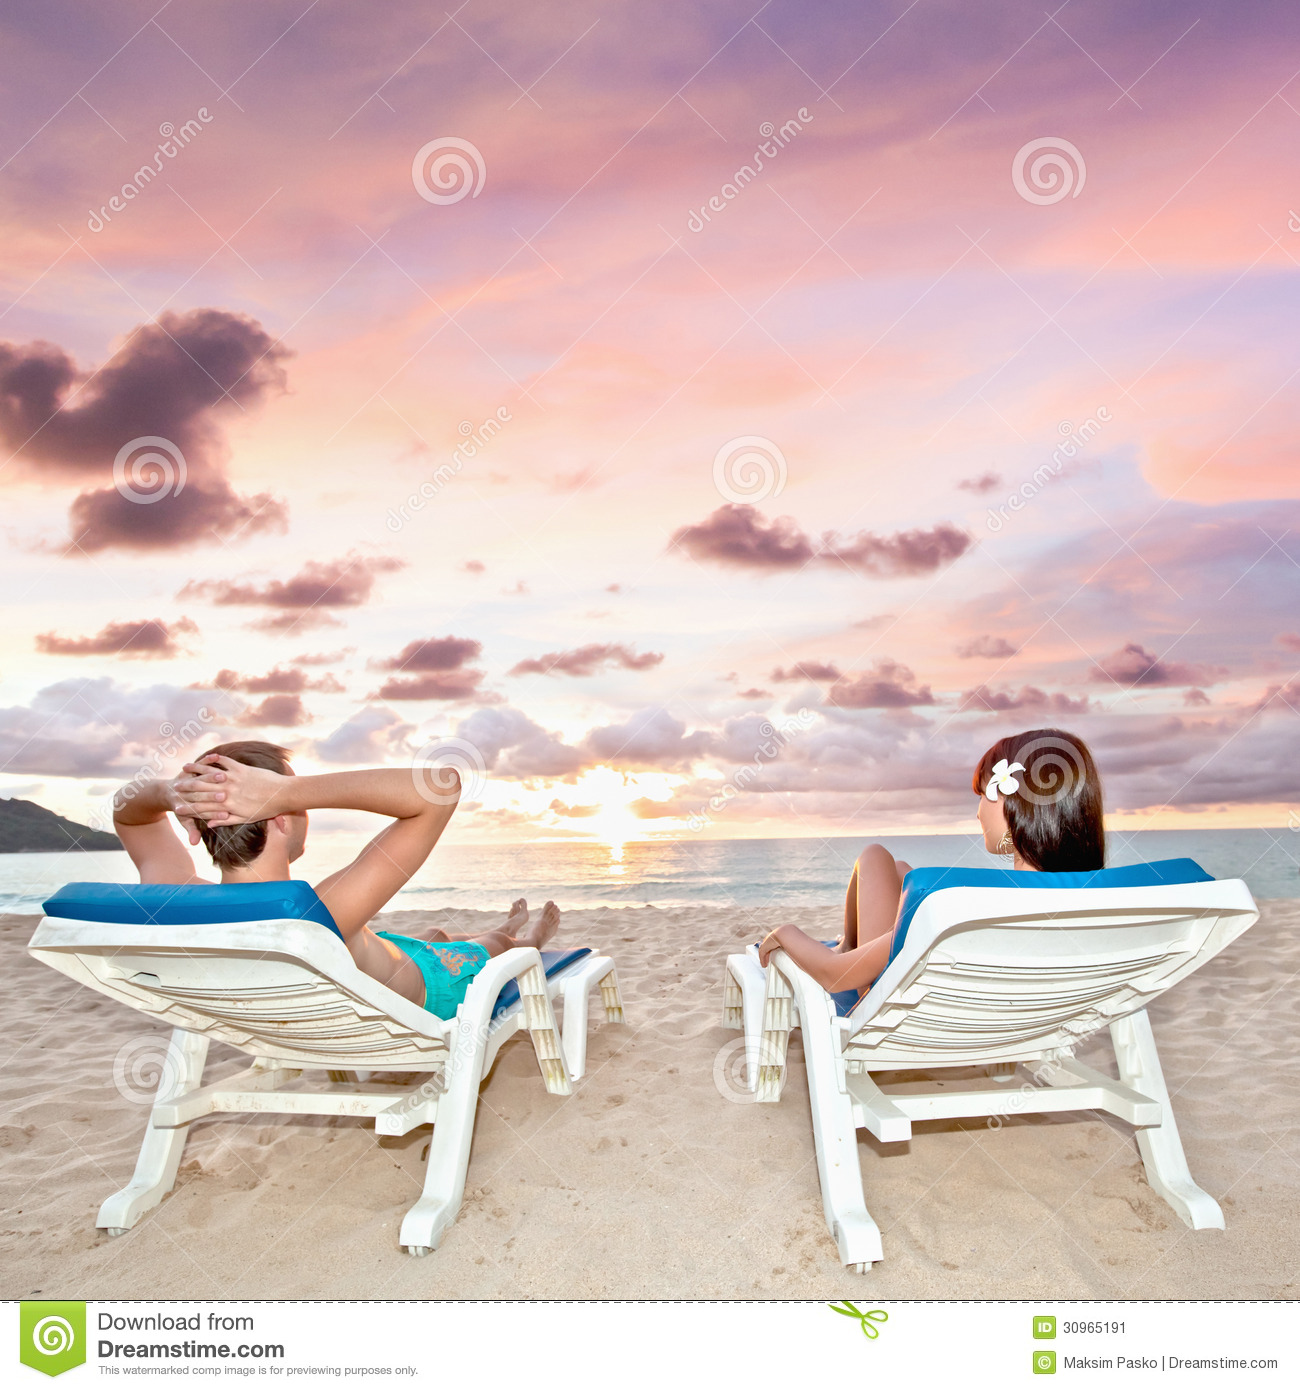 Couple At The Beach Stock Image Image Of Caucasian: Relaxing On Beach Stock Image. Image Of Relax, Shore